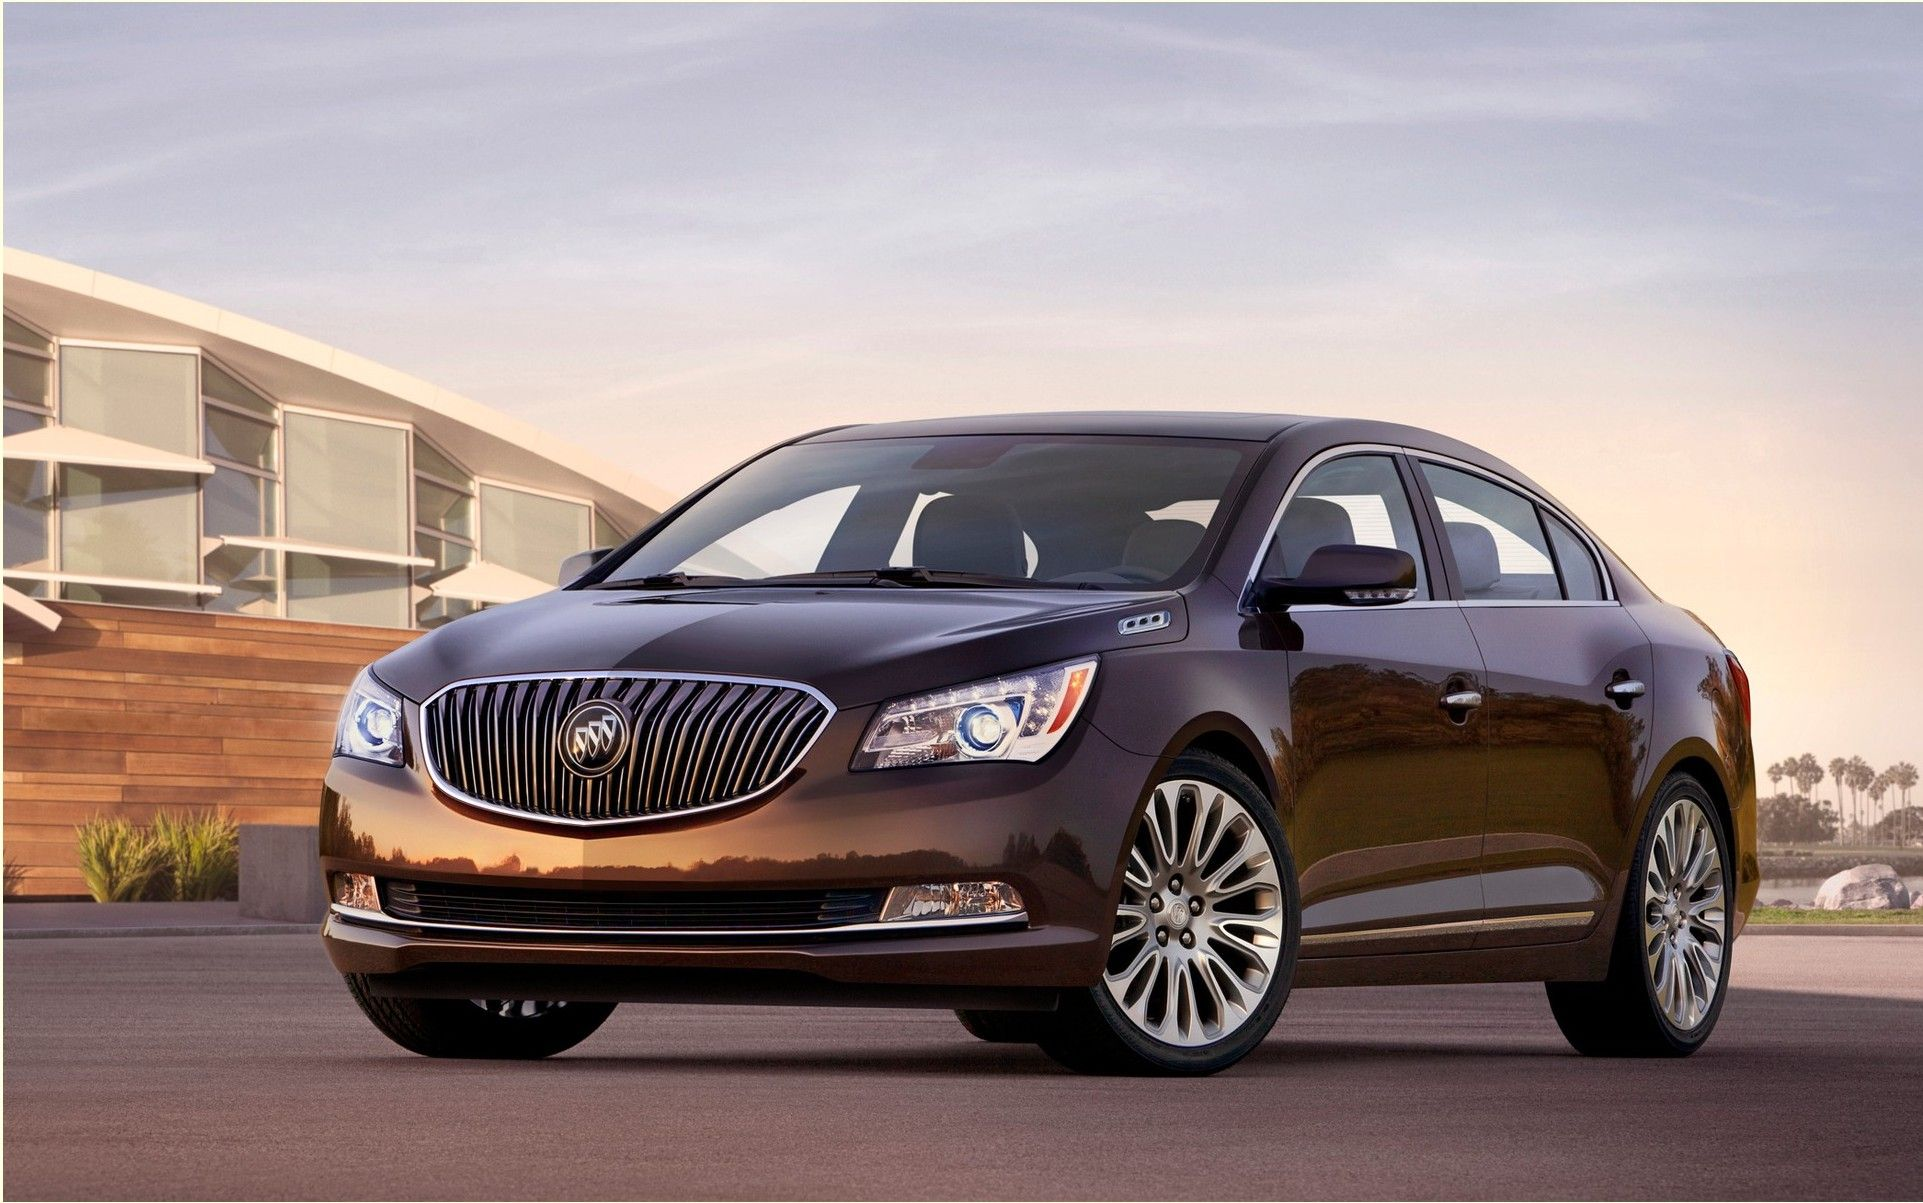 New 2015 Buick Lacrosse Redesign